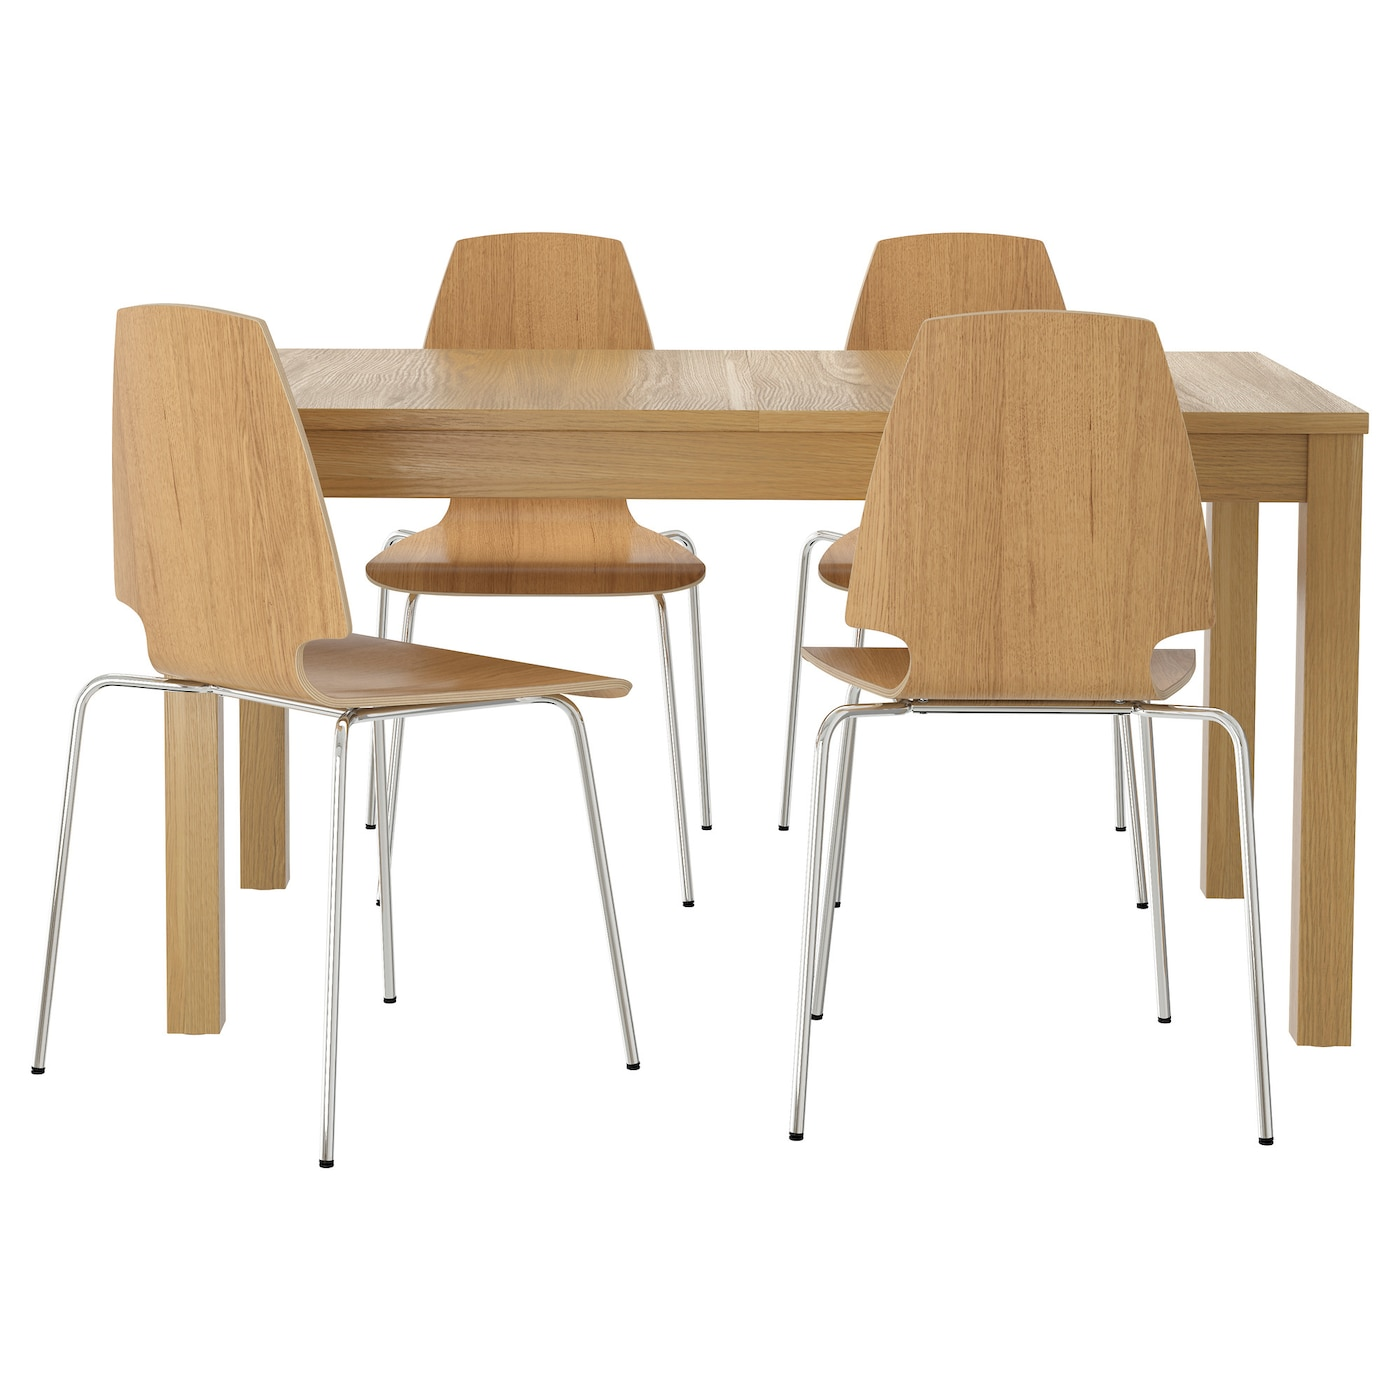 Dining table sets dining room sets ikea - Ikea wooden dining table chairs ...